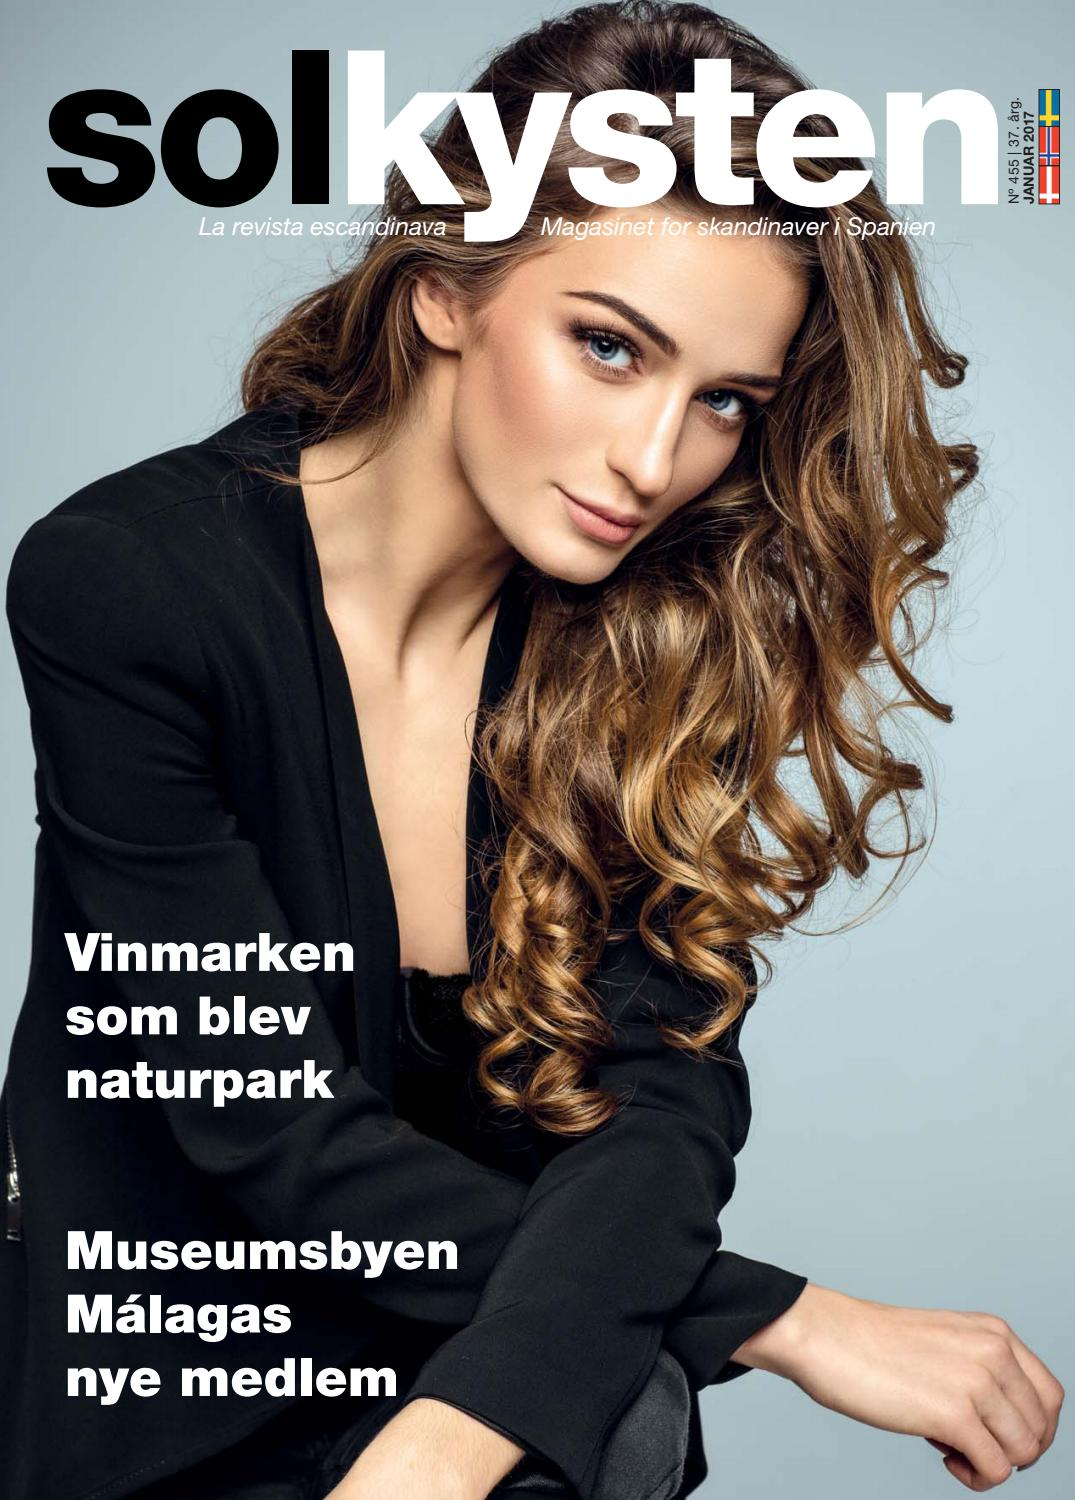 Solkysten August 2015 by Ediciones Solkysten - issuu